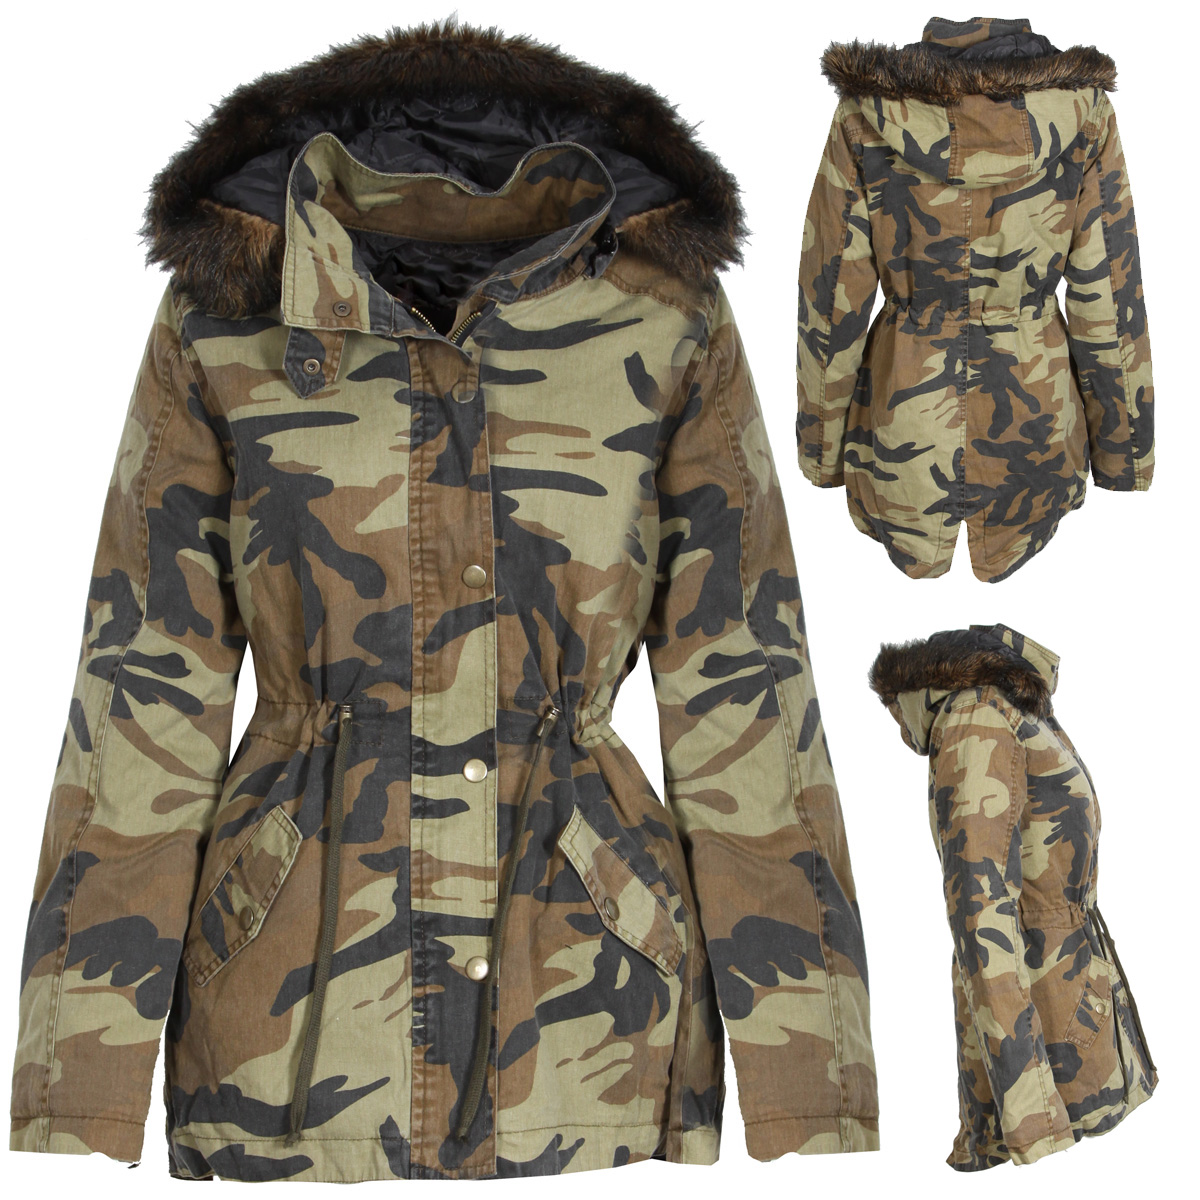 8d79bb24684 NEW WOMENS CAMO CAMOUFLAGE PARKA WINTER COAT JACKET FUR TRIM HOOD ...